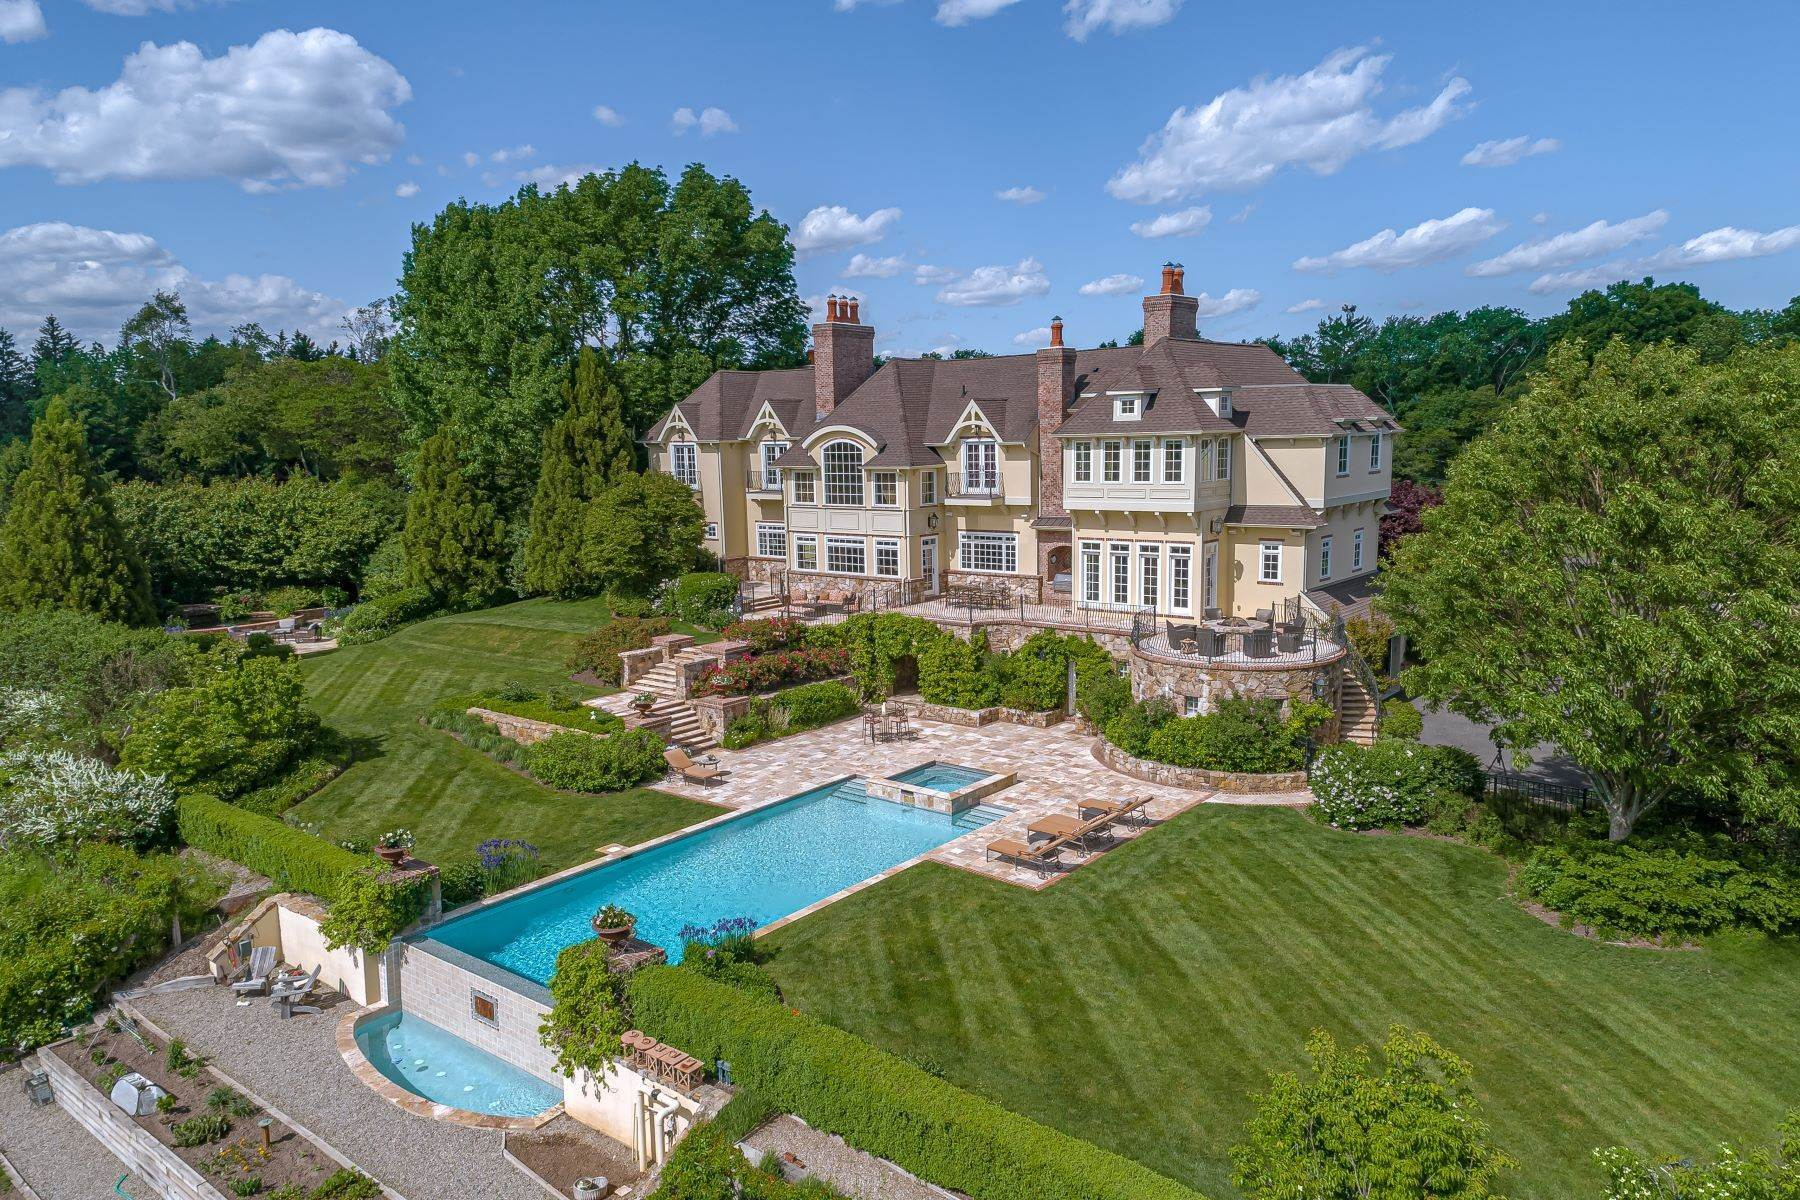 Single Family Homes for Sale at European Inspiration Balanced With American Elegance 23 Corey Lane Mendham, New Jersey 07945 United States